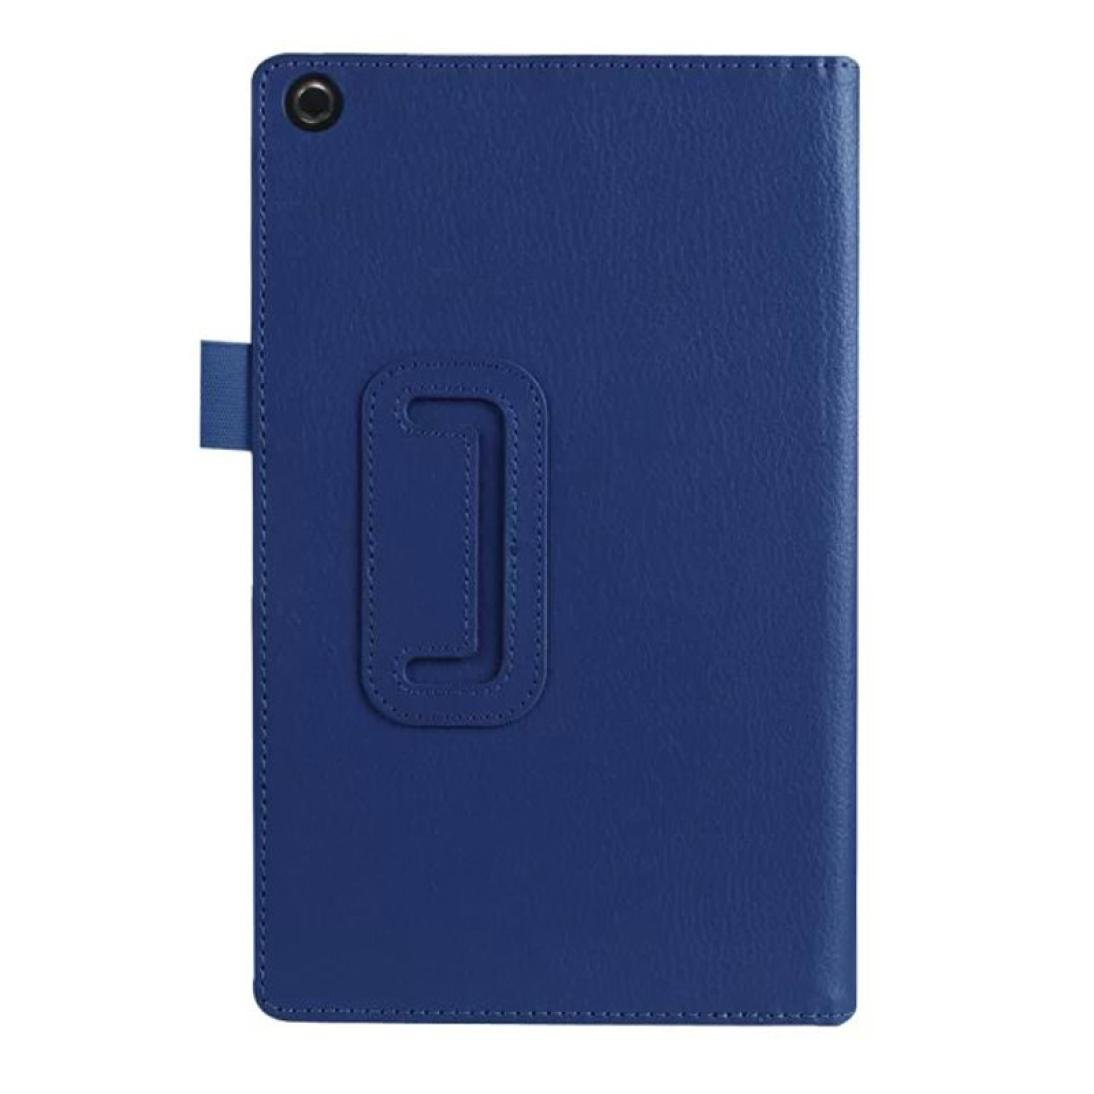 Iusun Ultra Slim Leather Tablet Cover Case Stand For Amazon Fire HD 8 Tablet (Dark Blue) LZC51015586DB_ZXJ